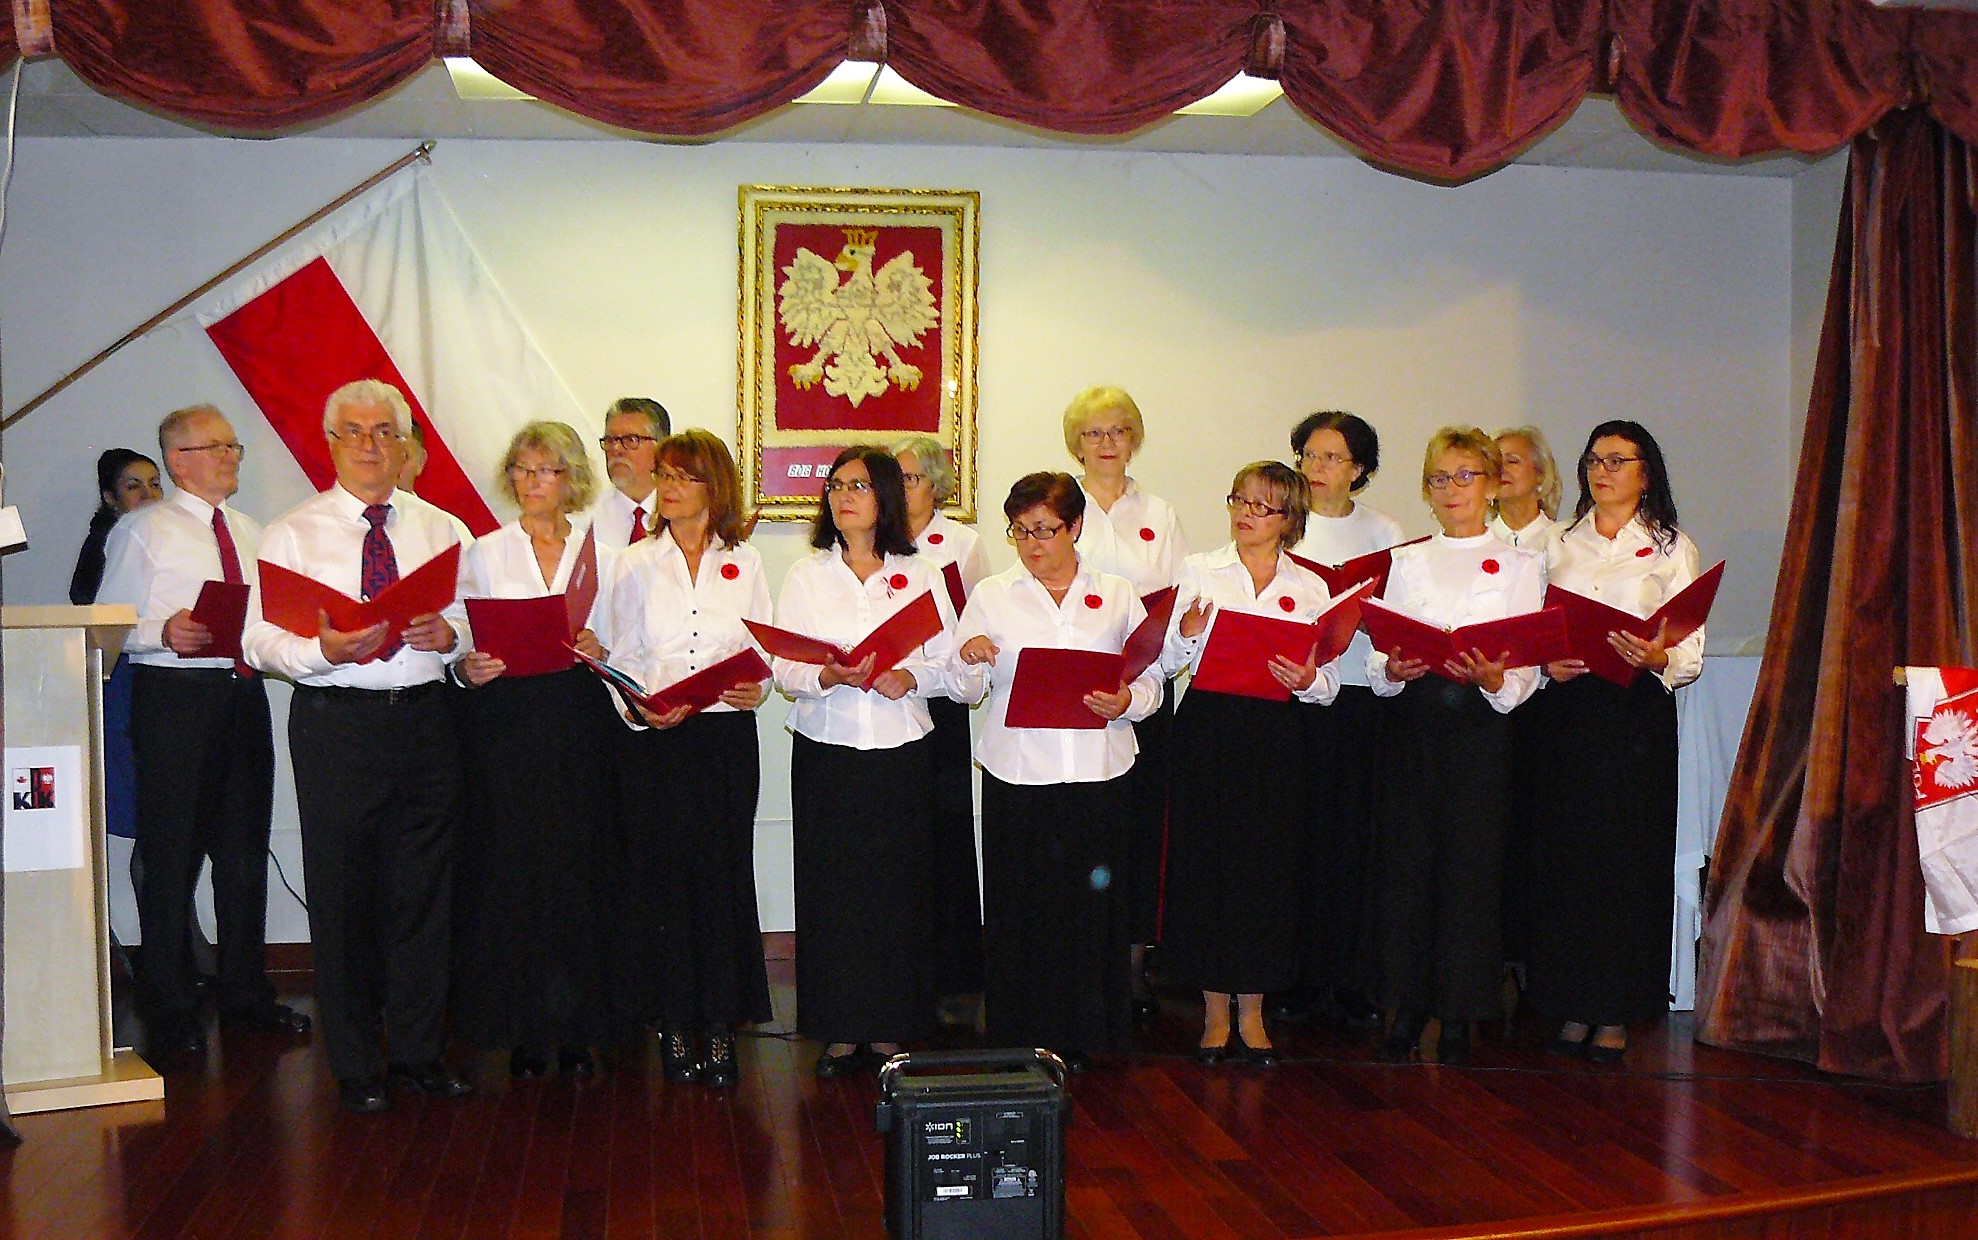 Choir 'In Polish Tunes'